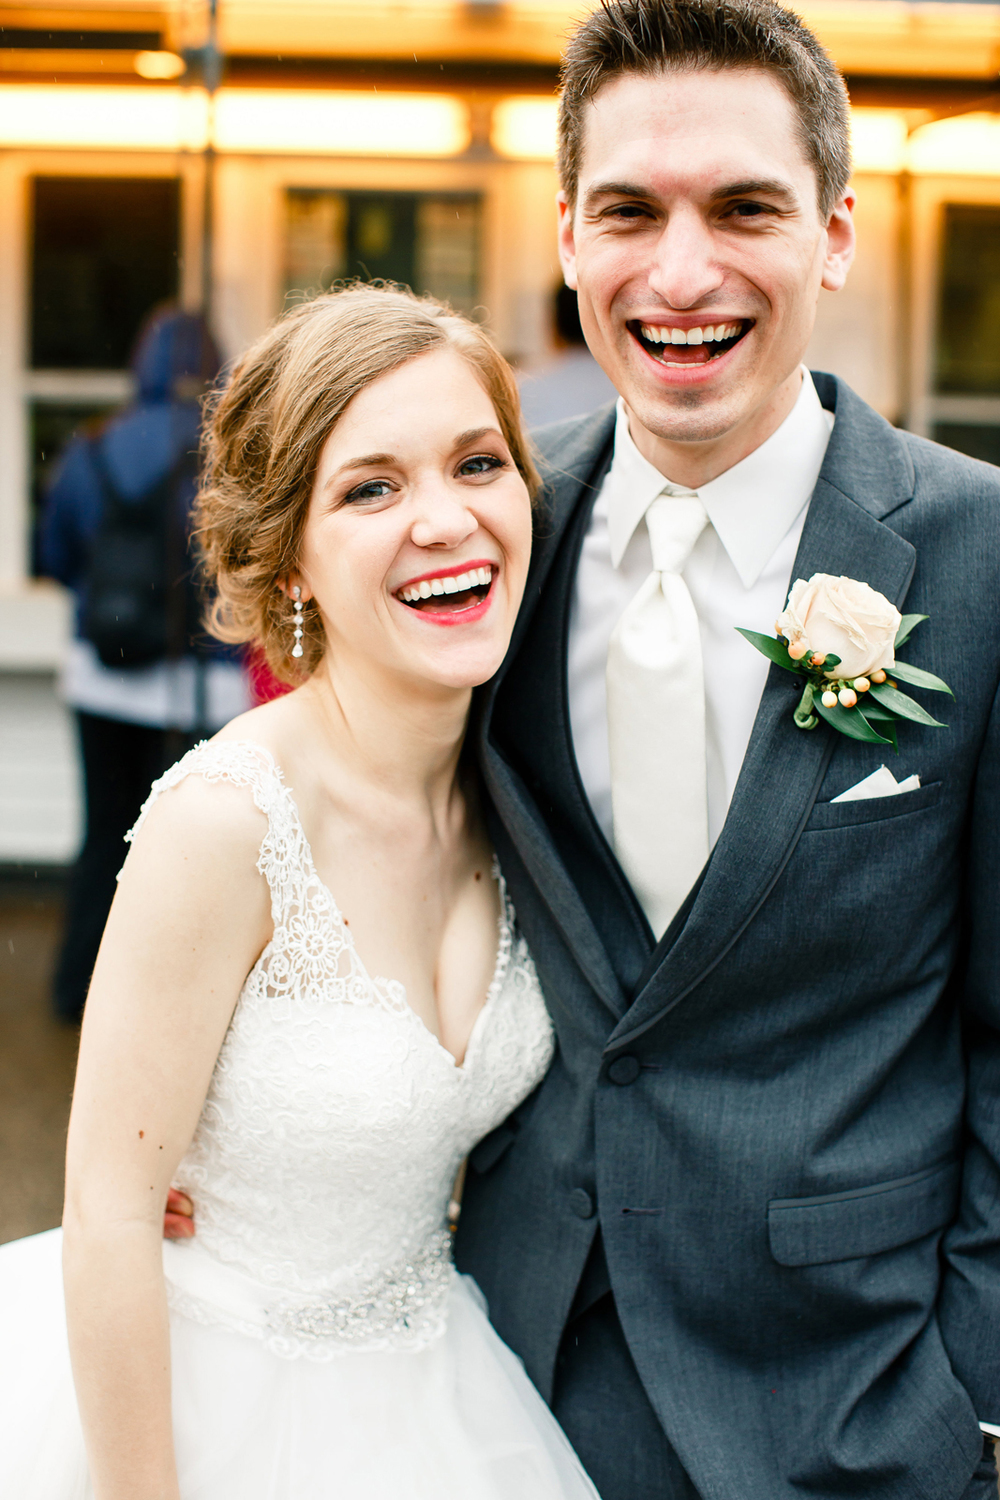 Bride Groom Ted Drewes Wedding Day St Louis Wedding Photographer Oldani Photography 2.jpg